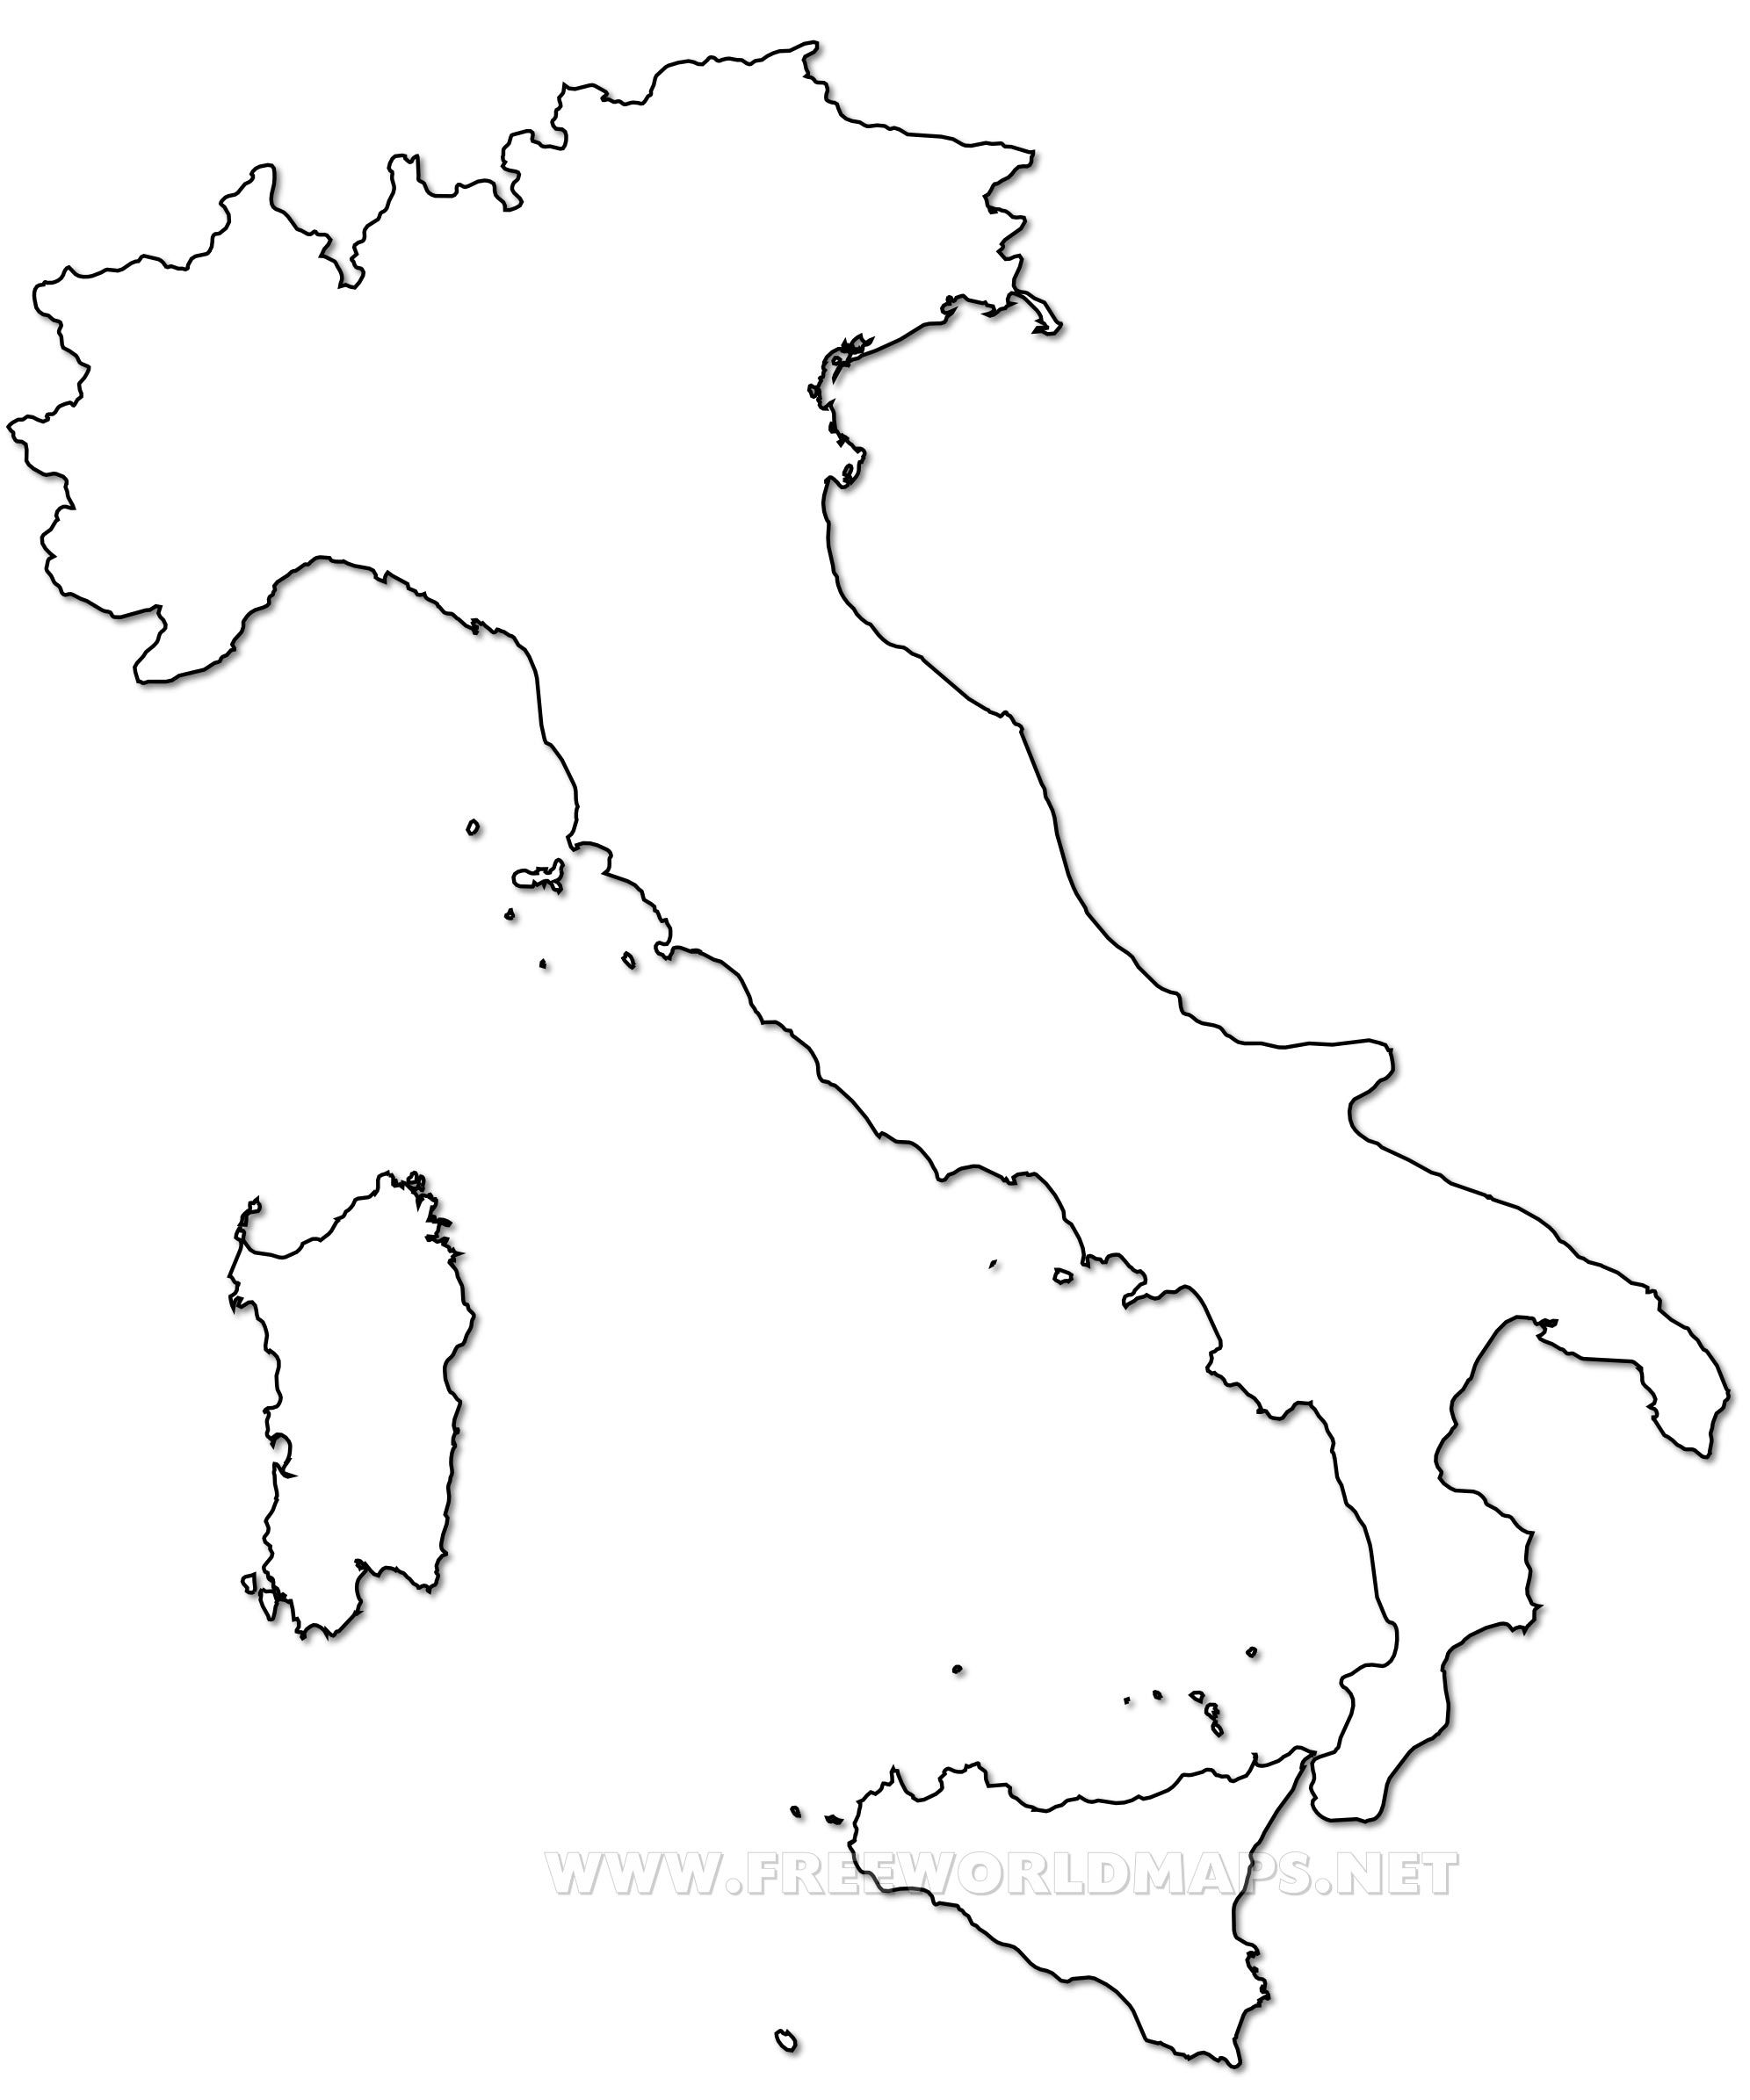 Outline map of italy printable with italy political map outline map of italy printable with italy political map gumiabroncs Choice Image